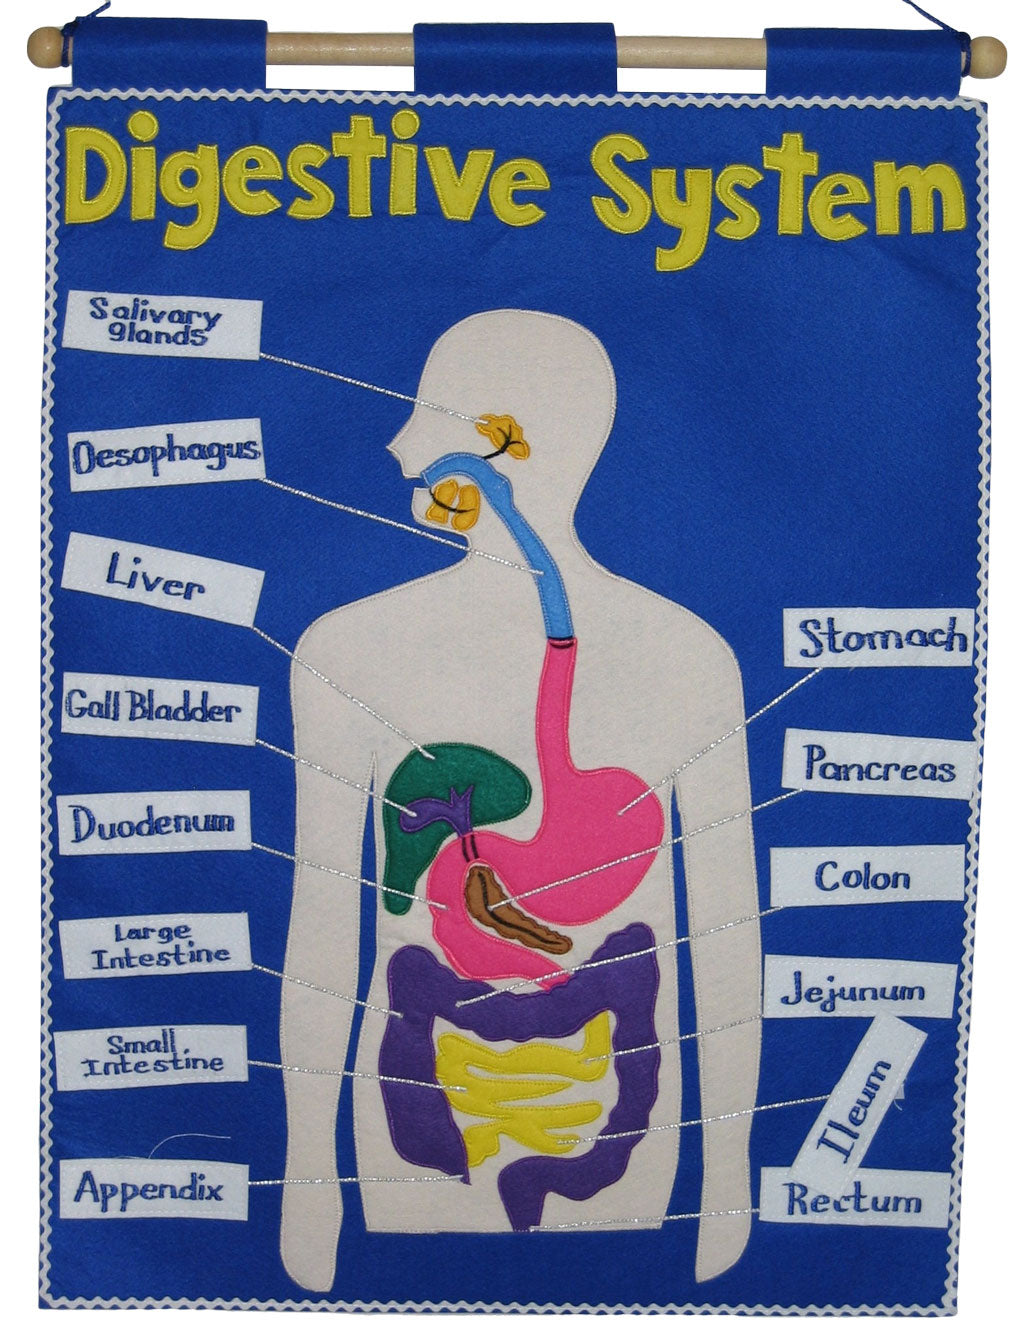 Digestive System - Fabric Wall Chart